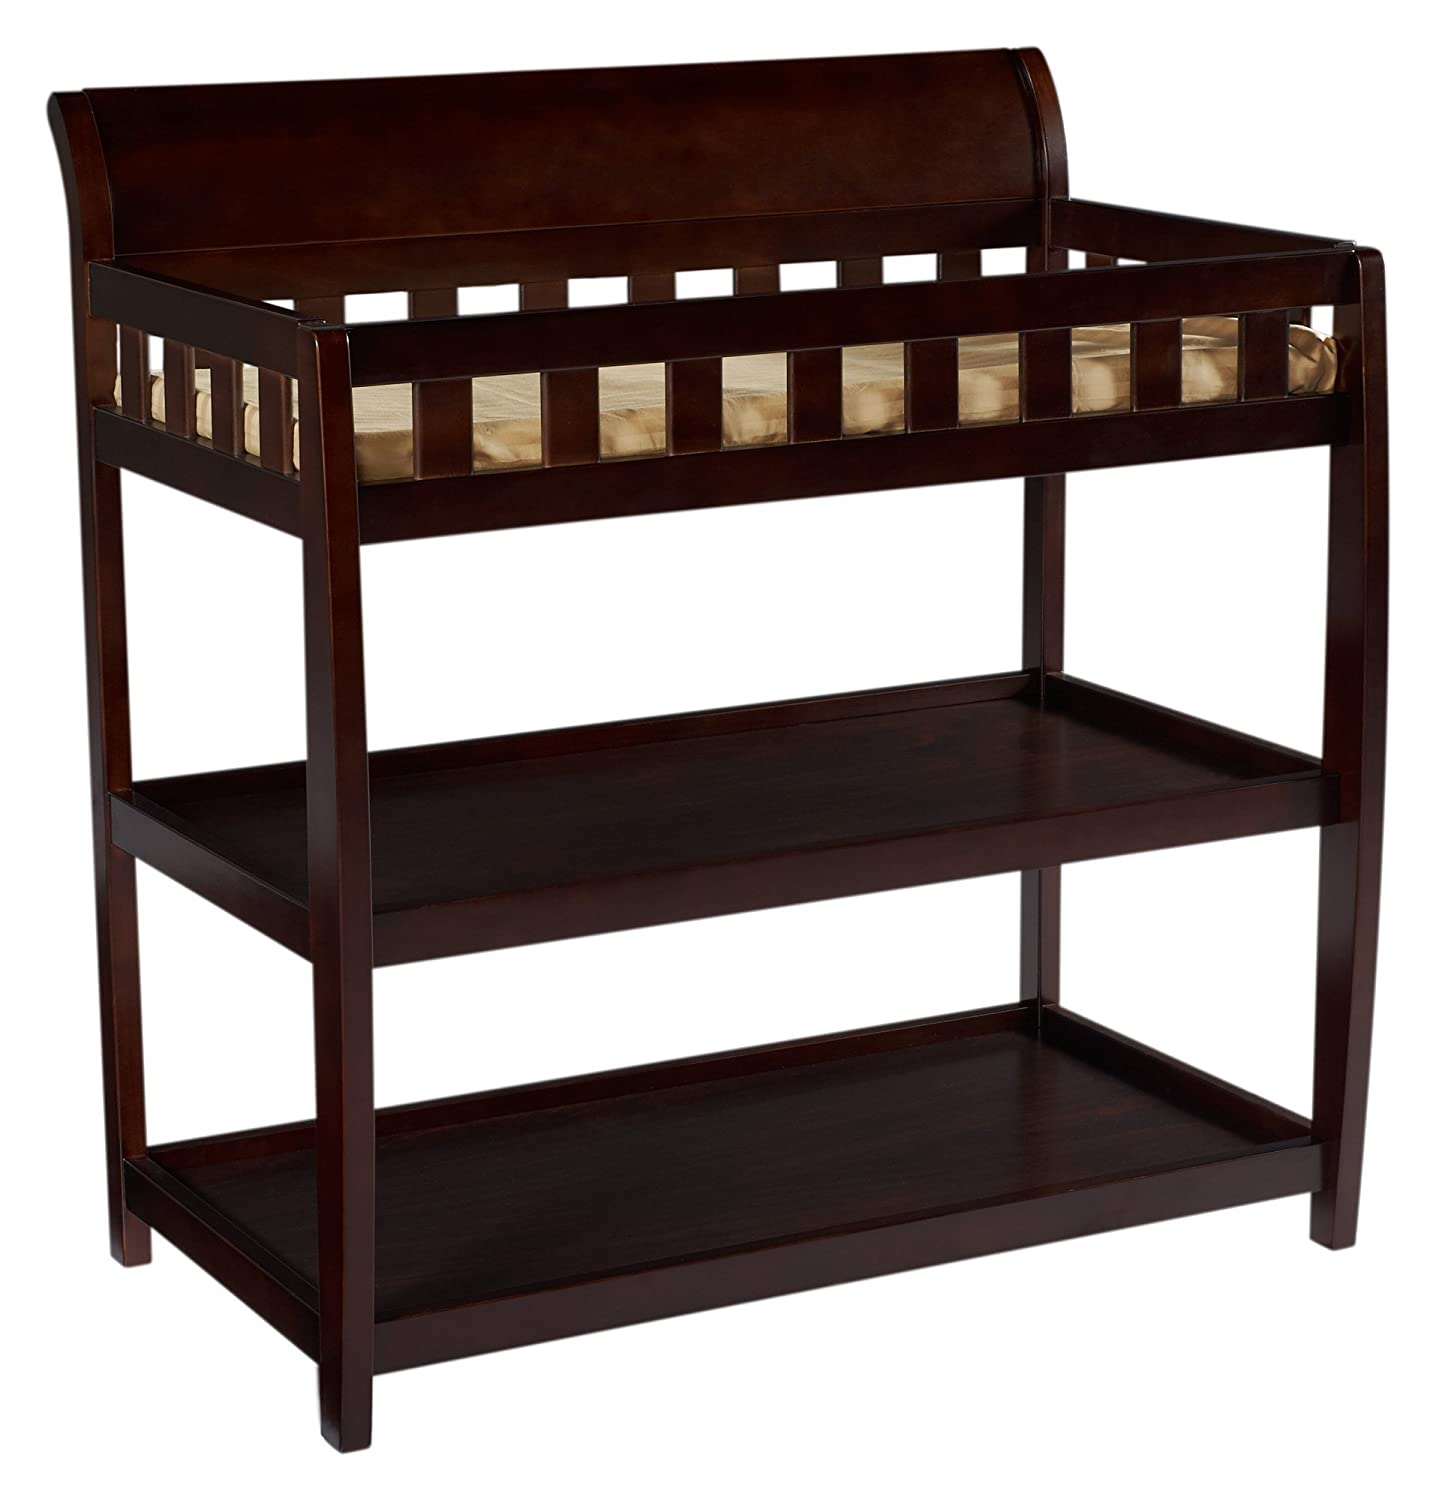 Delta Children Bentley Changing Table, Chocolate 7595-204